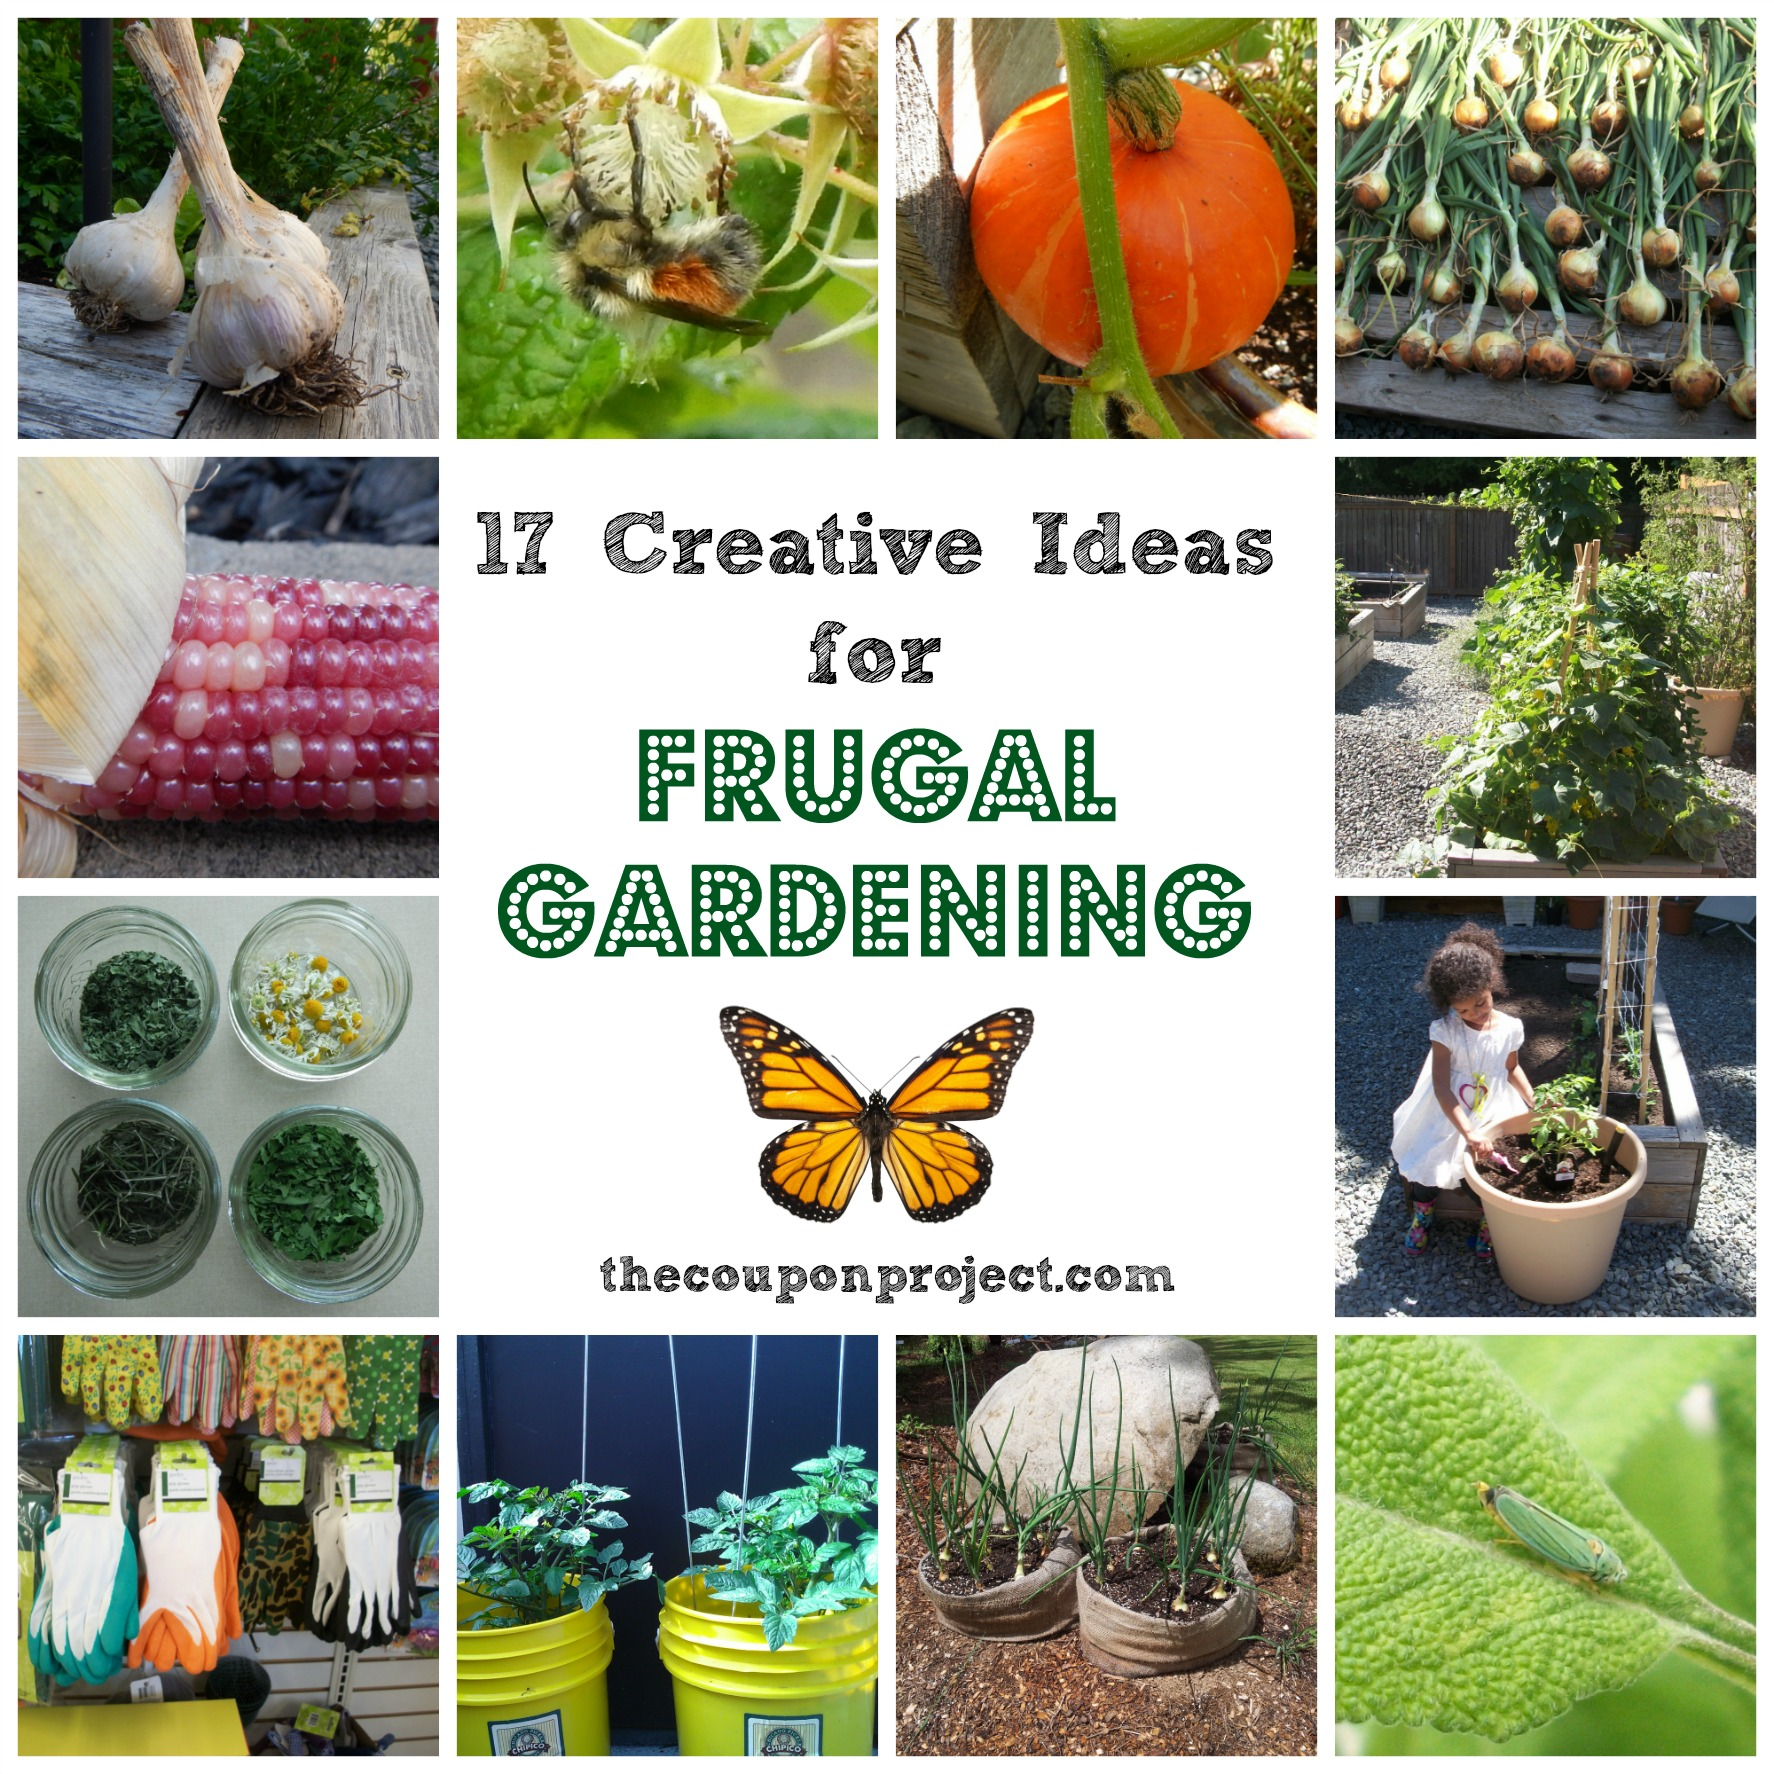 Inexpensive Gardens: Four Options For Frugal Gardening